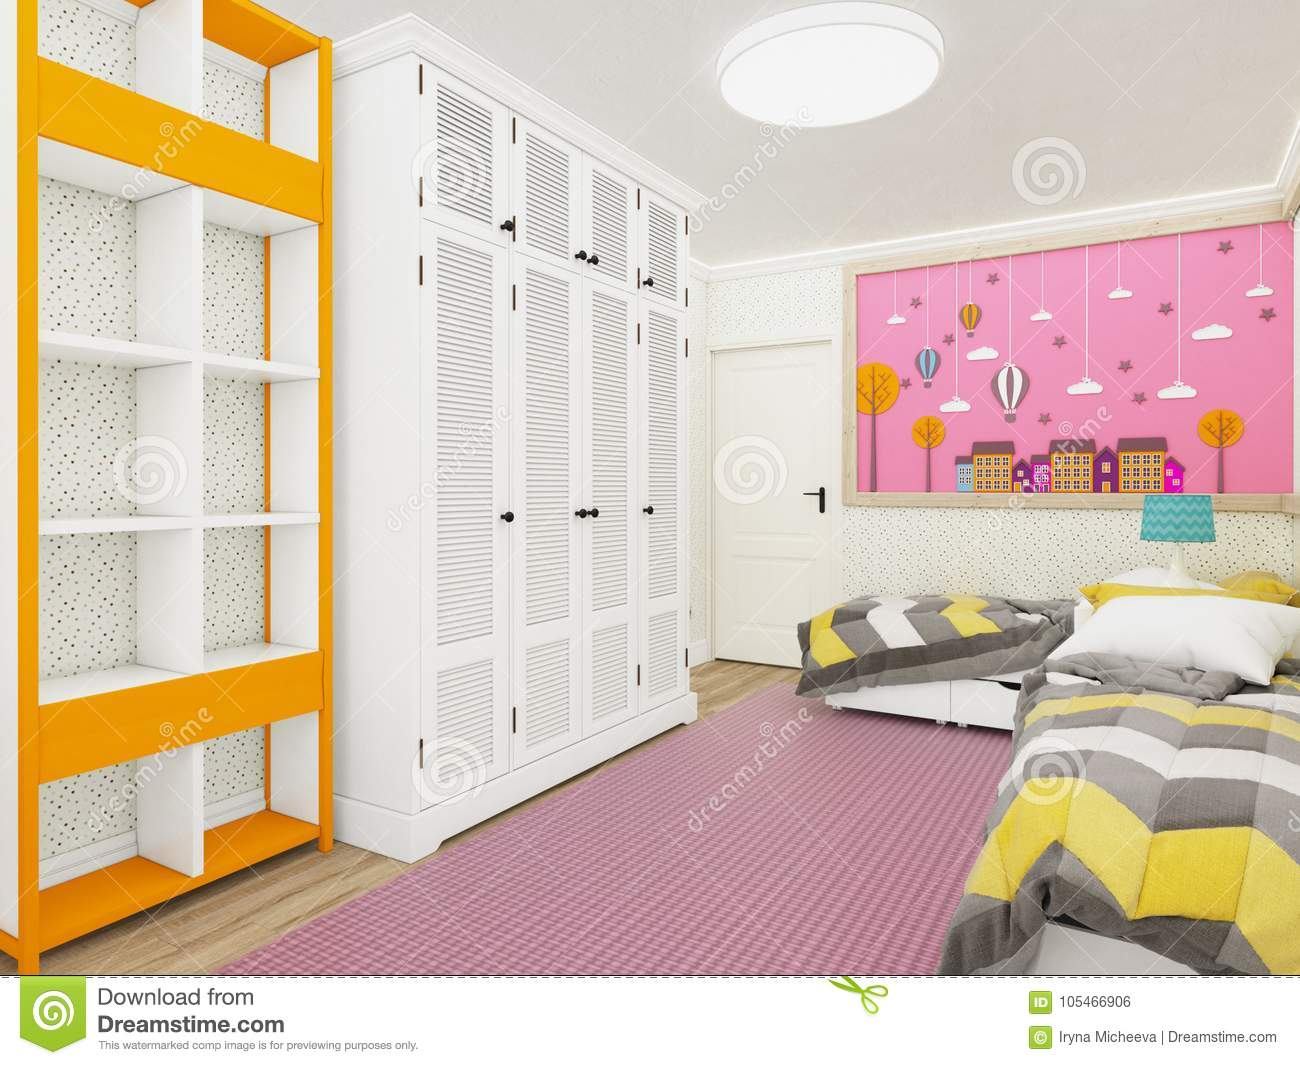 Cozy girl`s bedroom in pink with wardrobe and cute decoration on the wall. 3d rendering